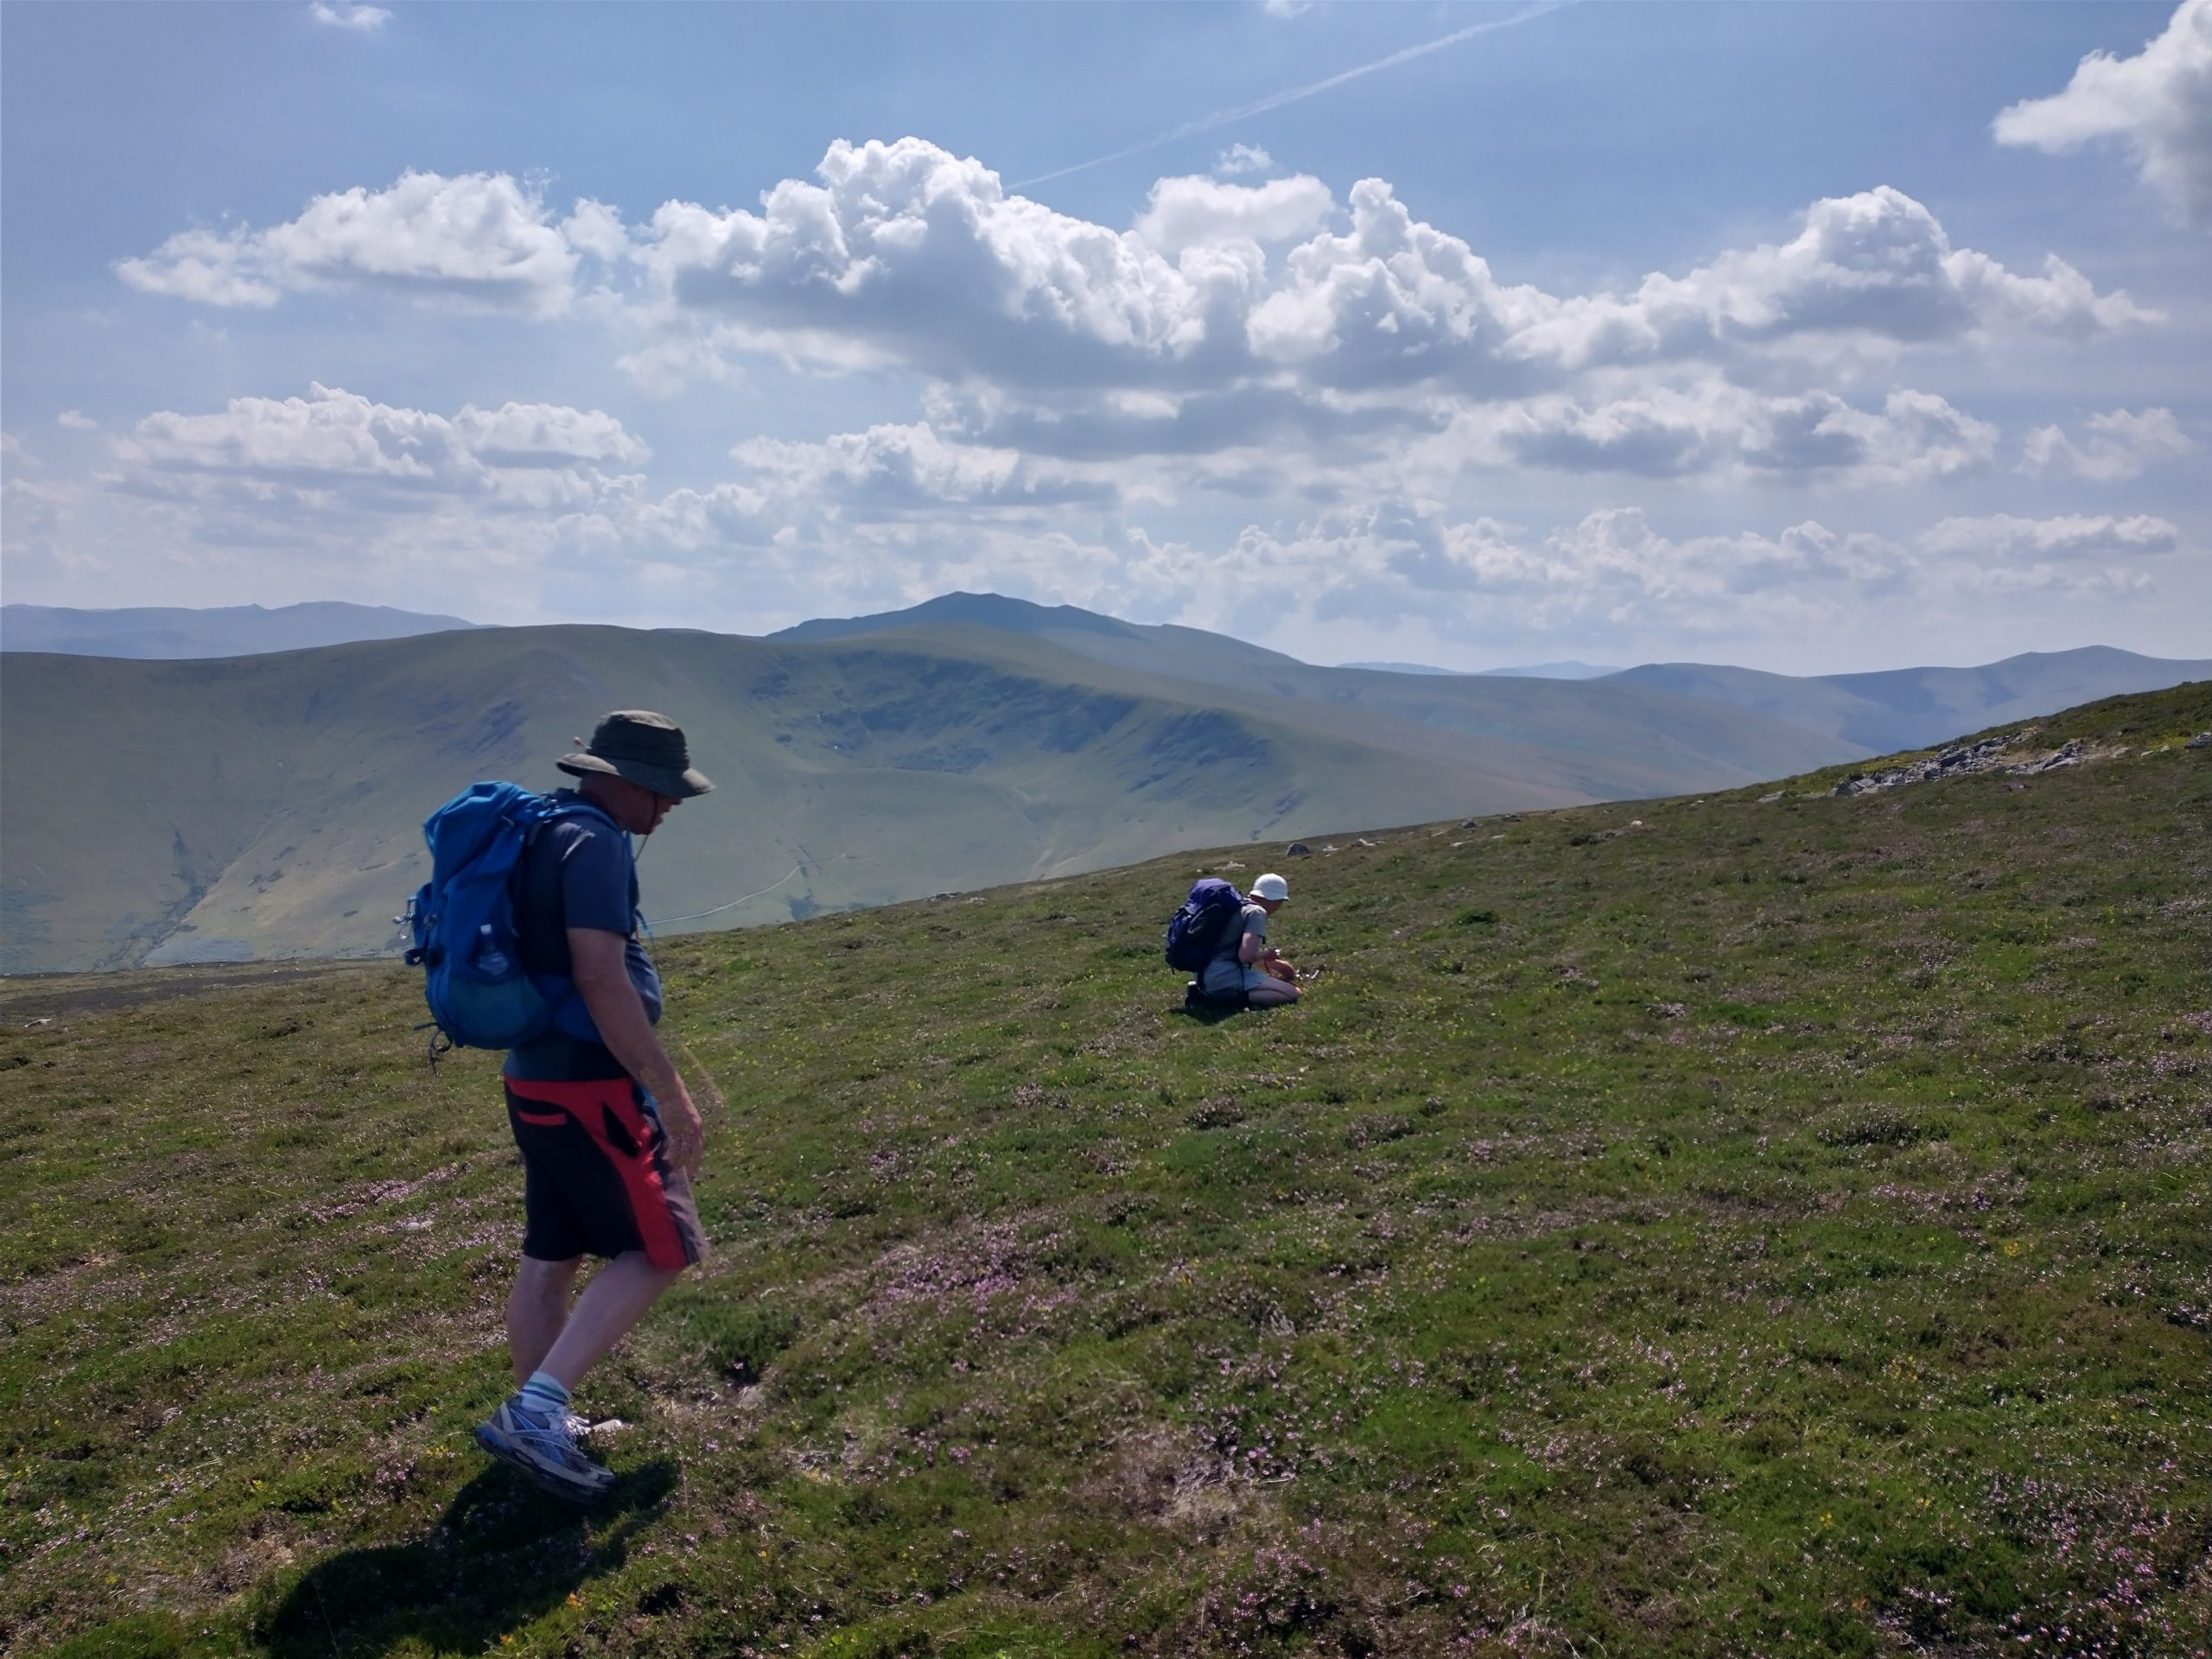 Searching the montane heath for lichens